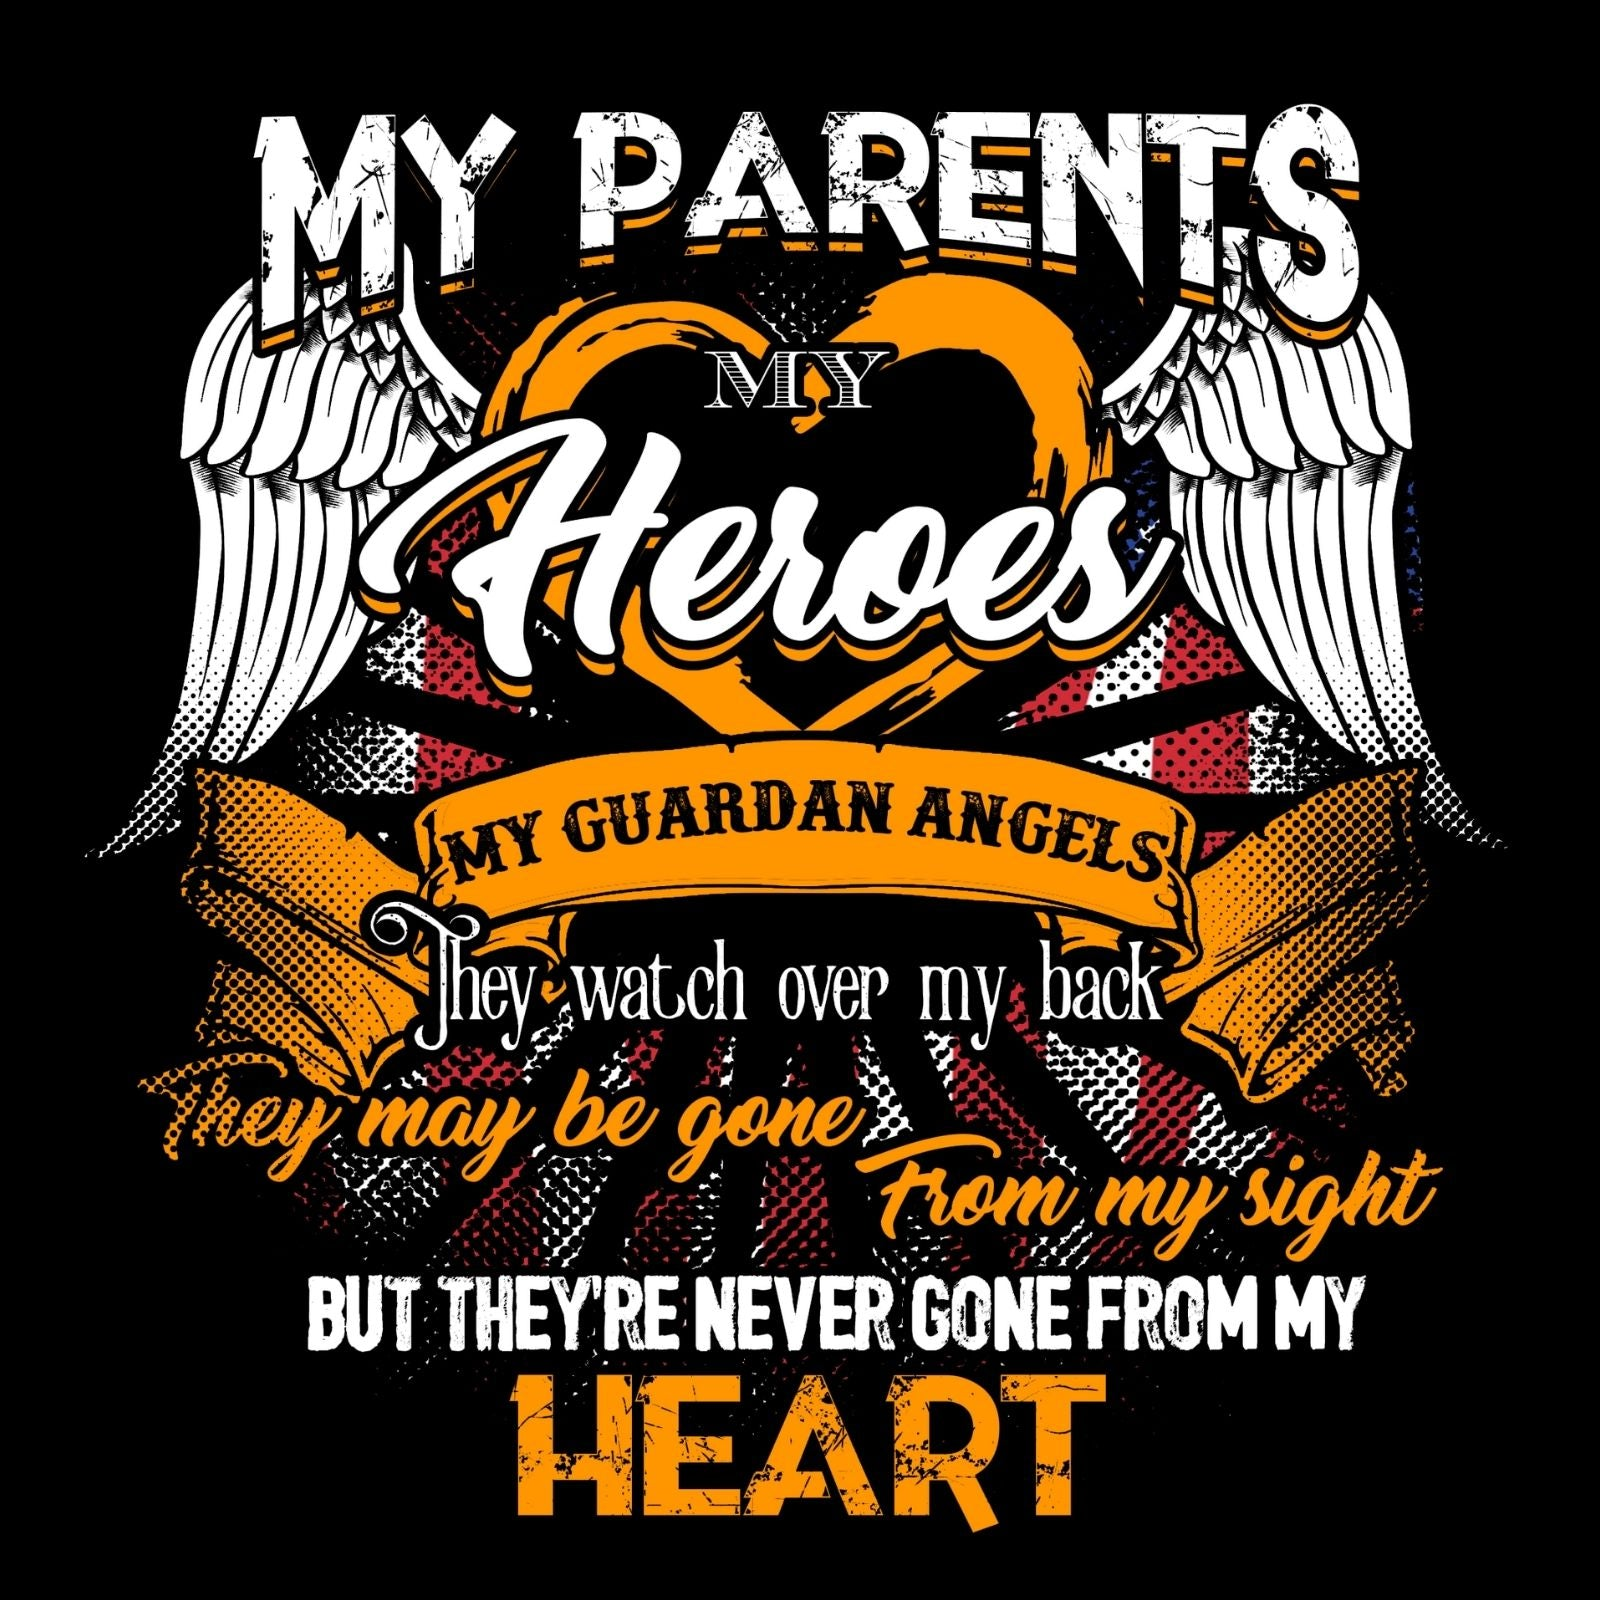 My Parents My Hero My Guardian Angels They Watch Over My Back They Maybe Gone From My Sight But They're Never Gone From My Heart - Bastard Graphics